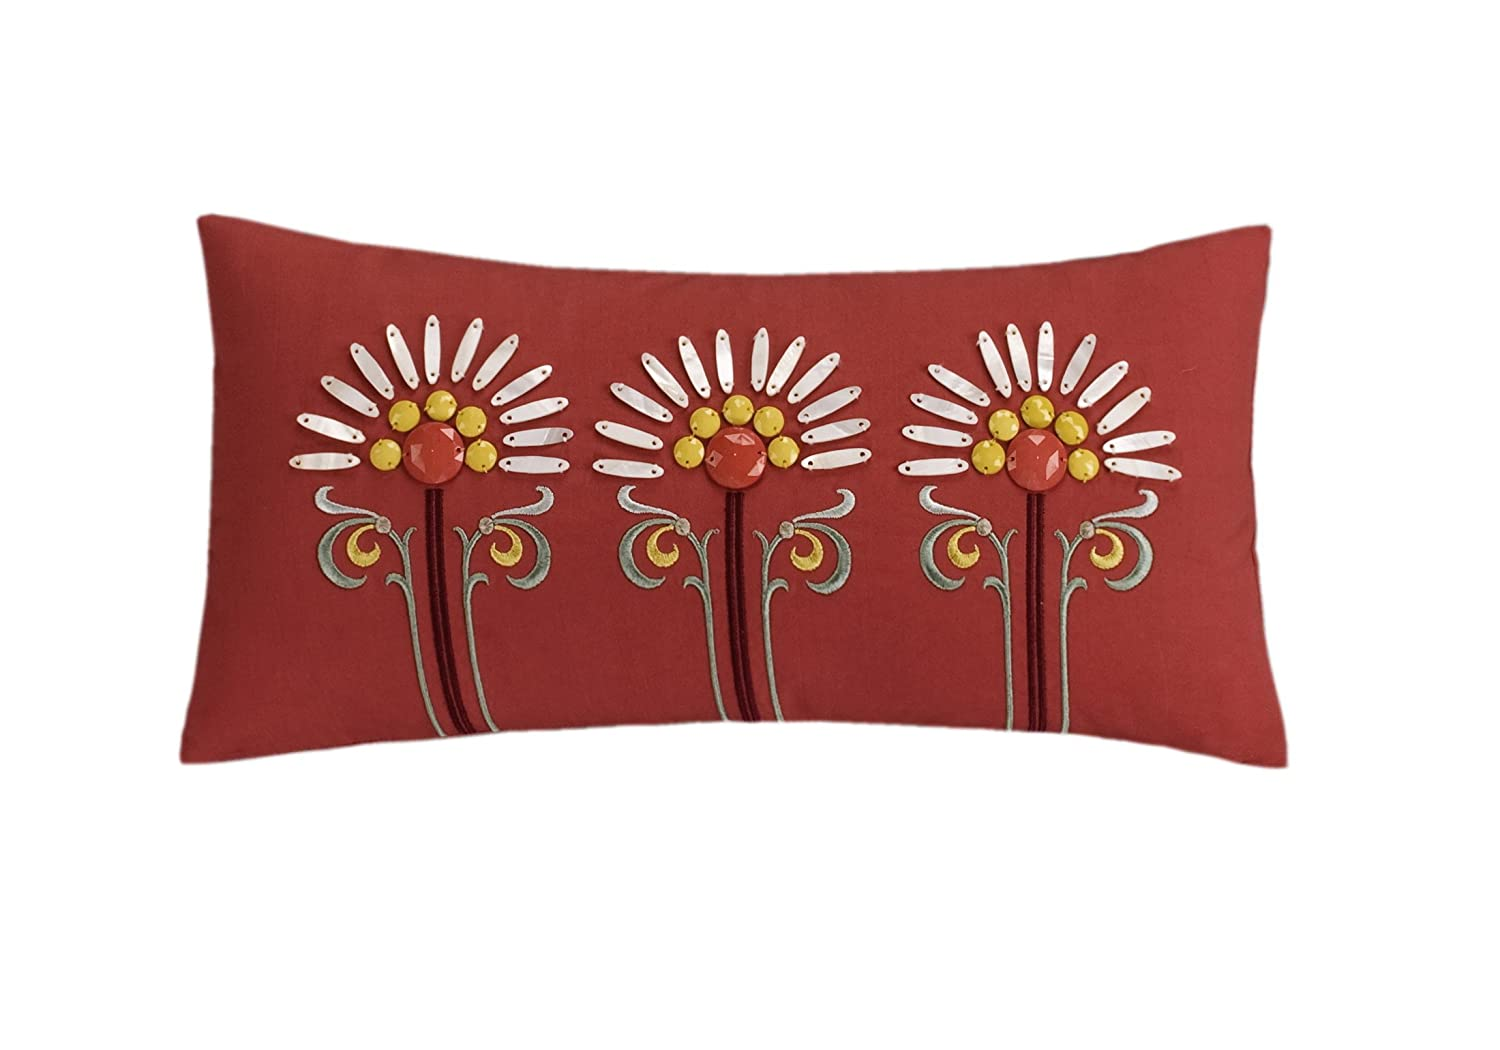 echo jaipur echo jaipur paisley print bedding at bedeck   - amazoncom echo jaipur by inch polyester fill pillow red